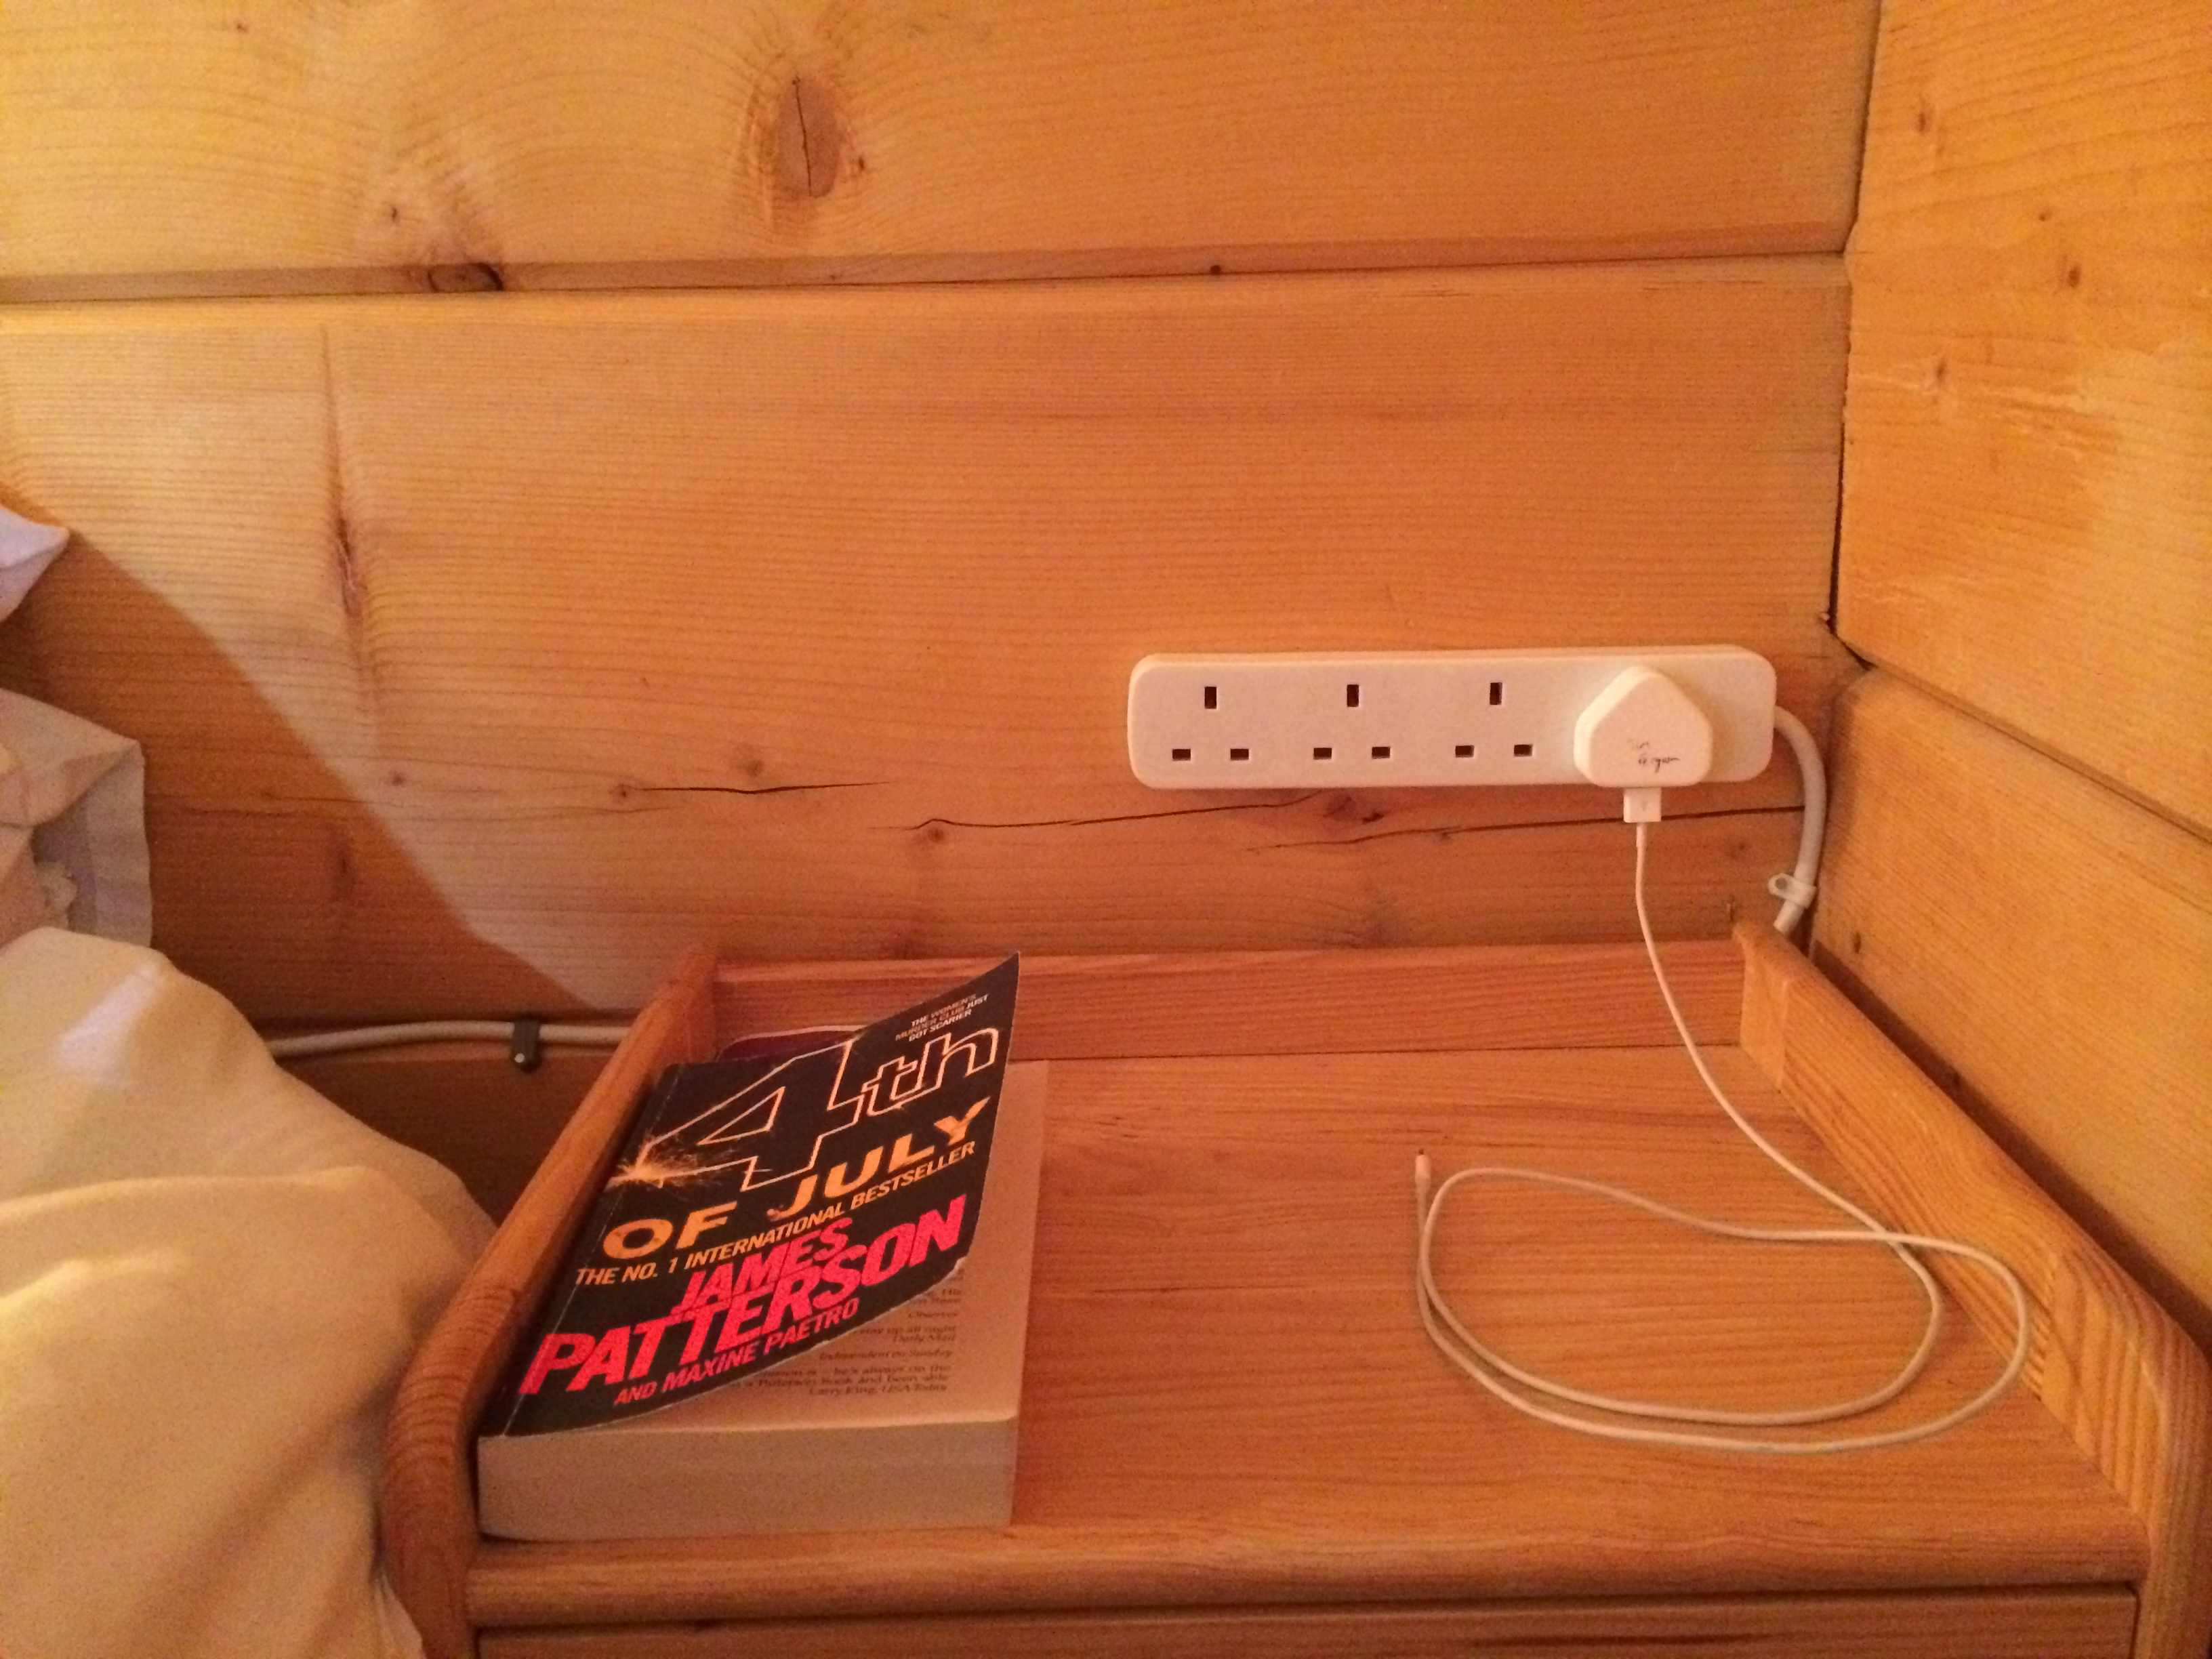 British Plug in every bedroom